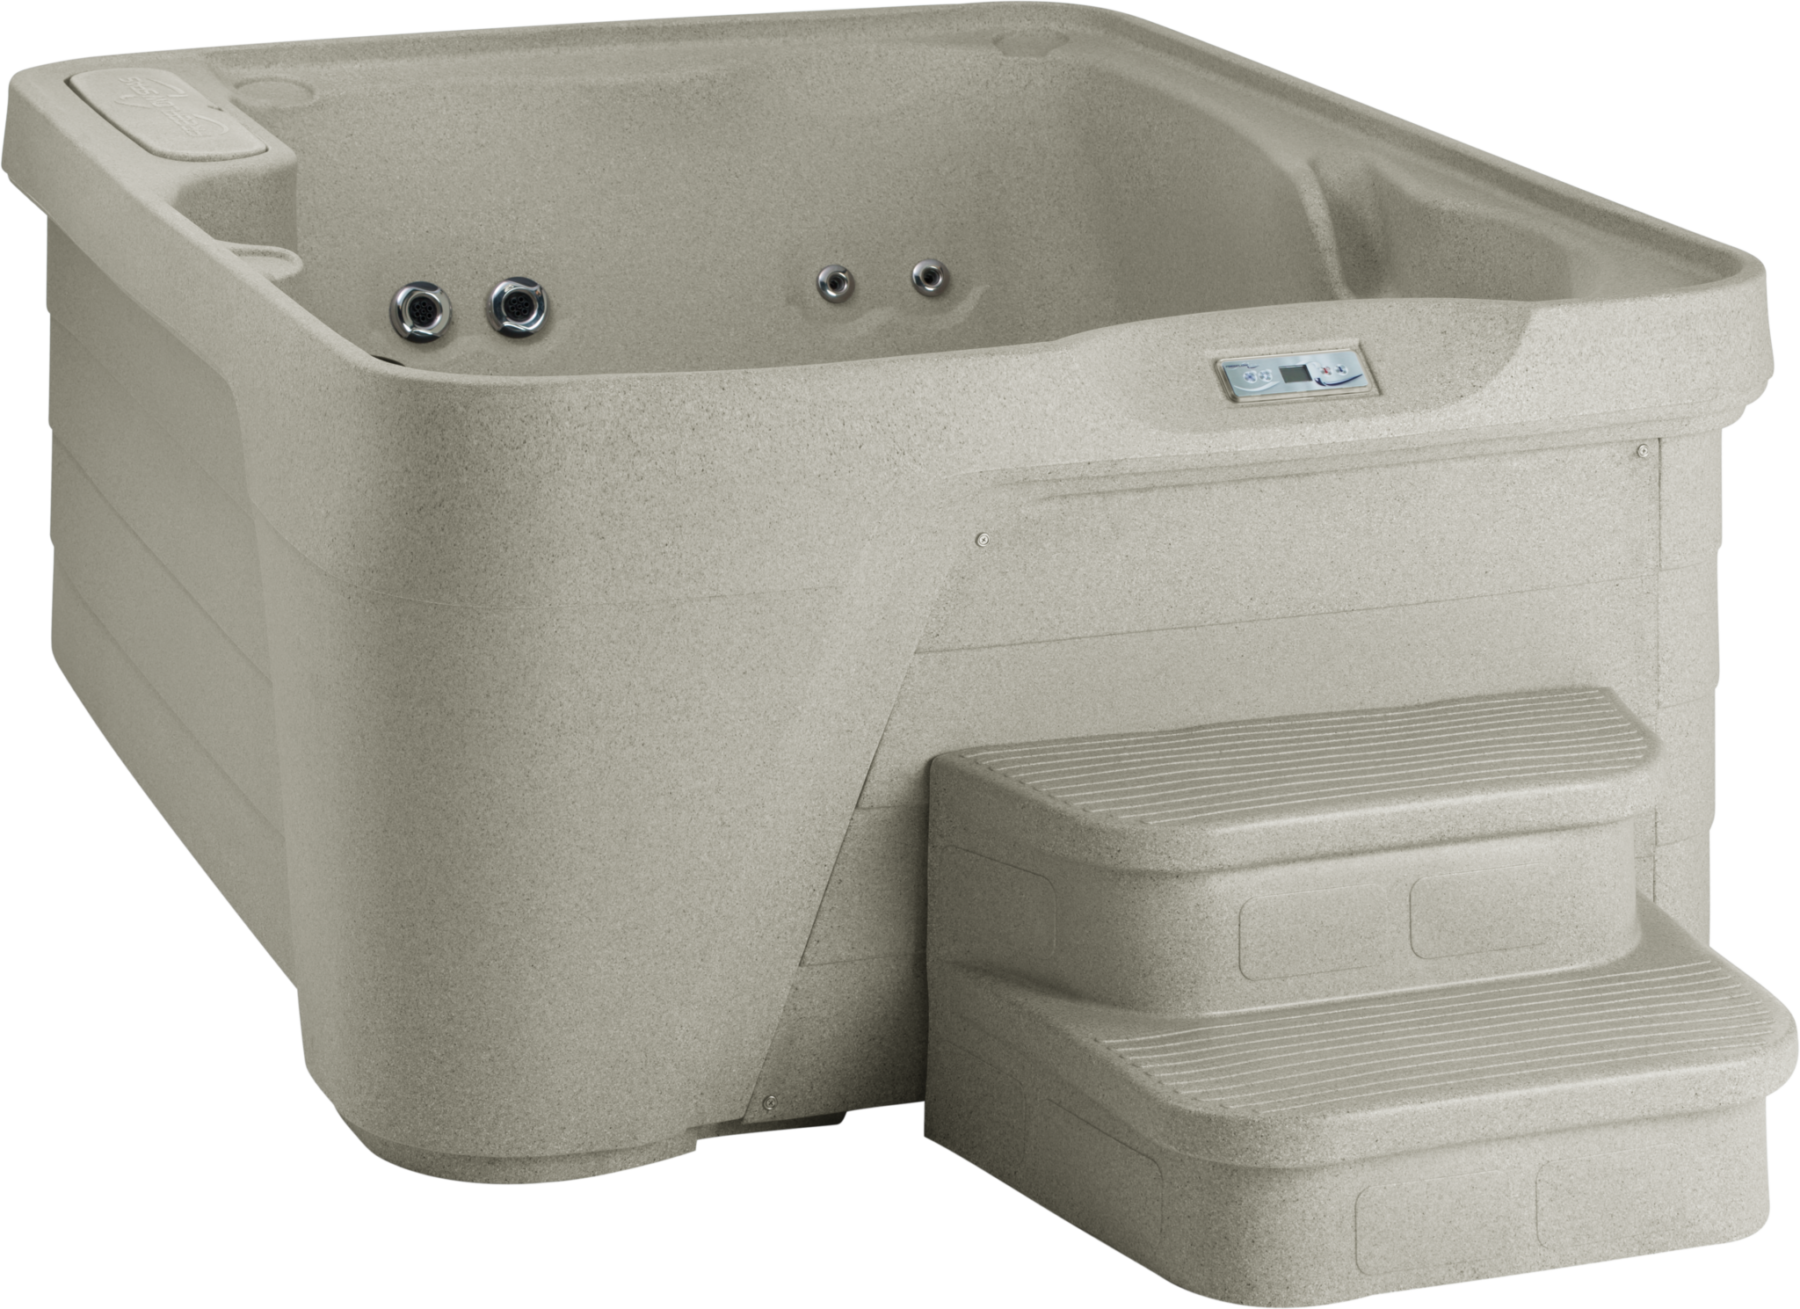 lxl square prod jacuzzi tub j hot ground above product person